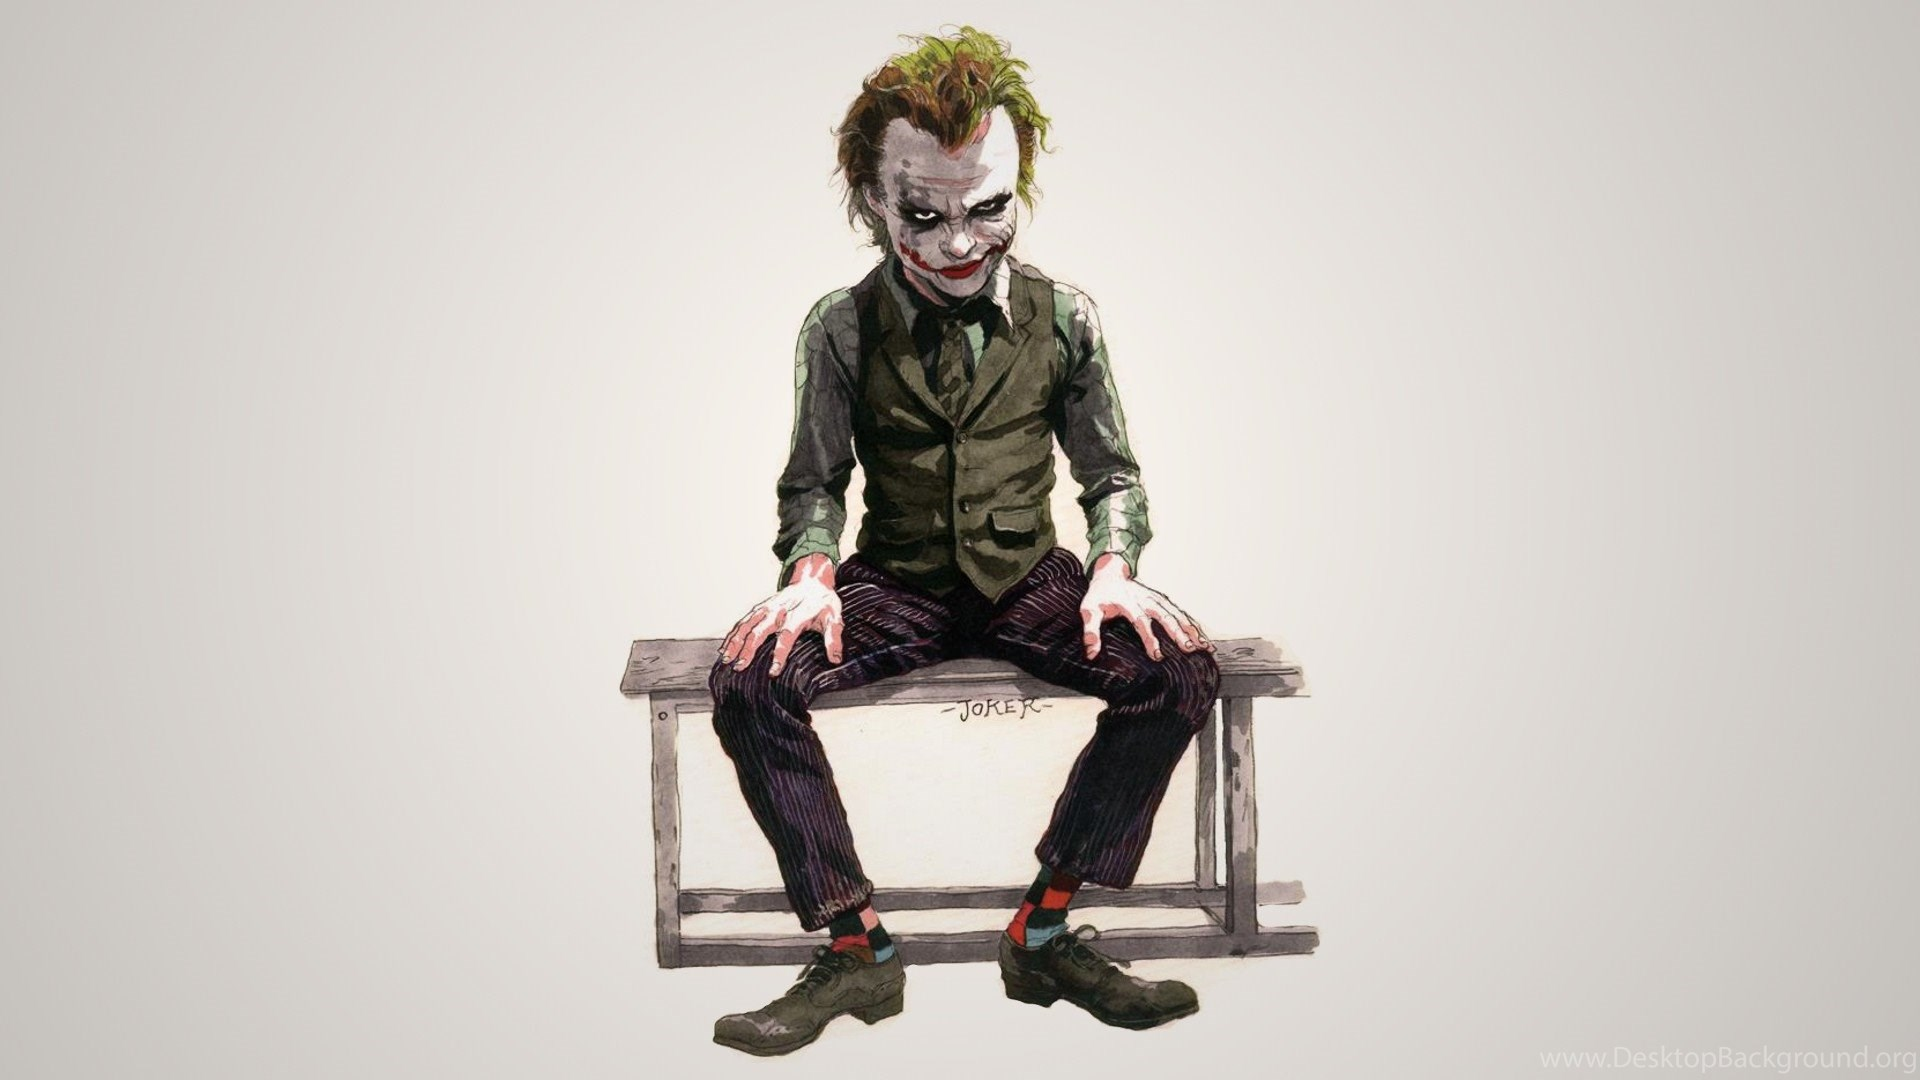 Simple Wallpaper Mac Joker - 991752_joker-cartoon-mac-1920x1080-hd-wallpapers-and-free-stock-photo_1920x1080_h  Perfect Image Reference_40774.jpg